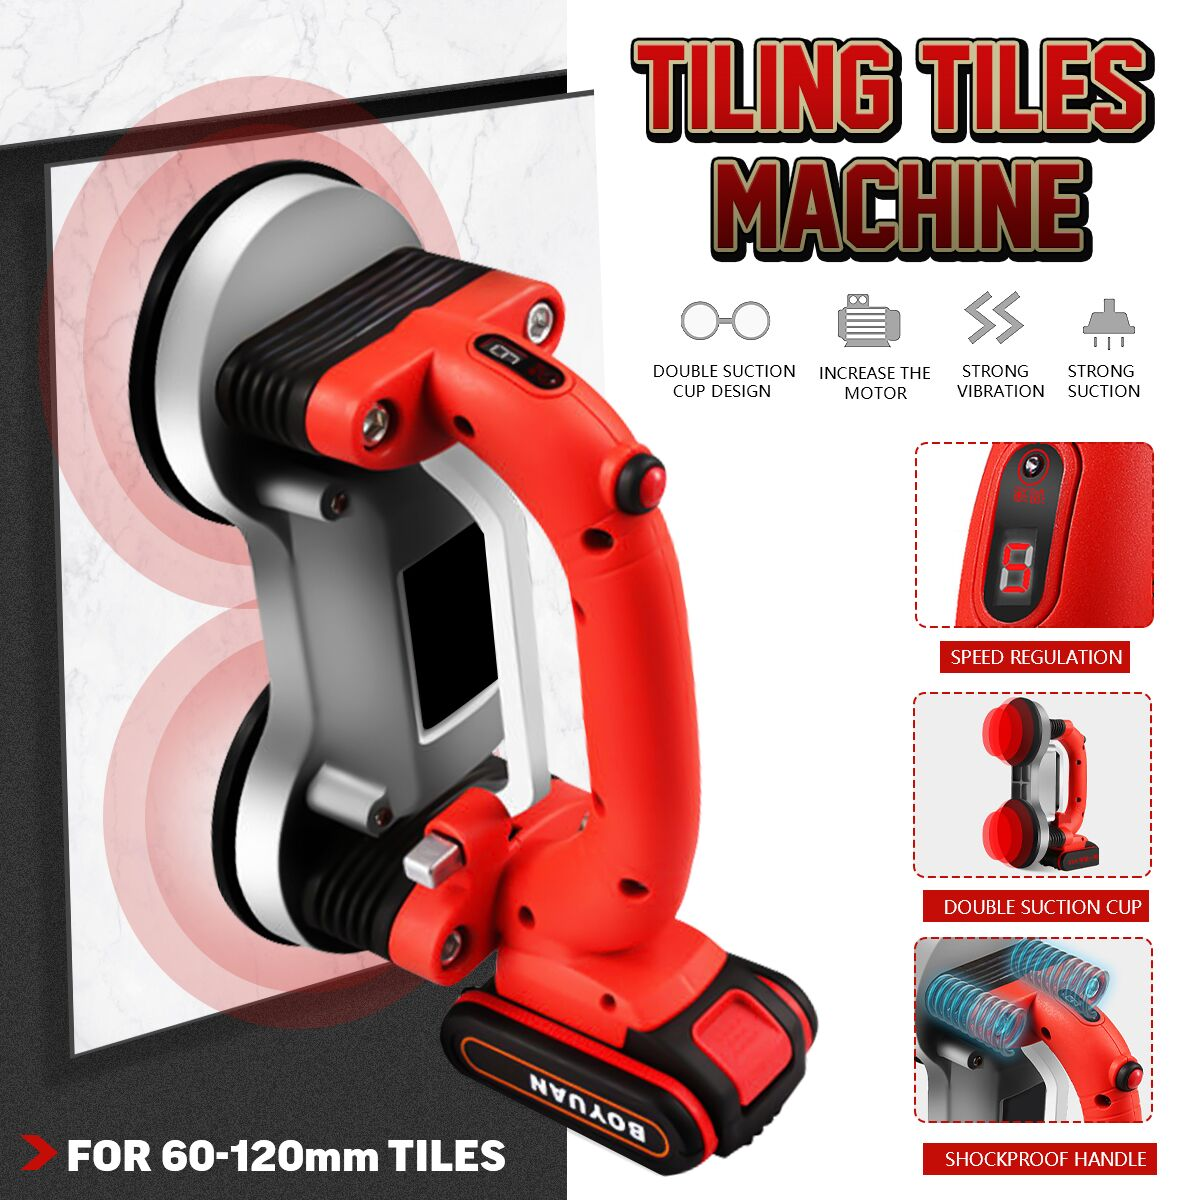 60-120mm Tiling Tiles Machine Tiles Vibrator Suction Cup Adjustable Protable Automatic Floor Vibrator Leveling Tool With Battery